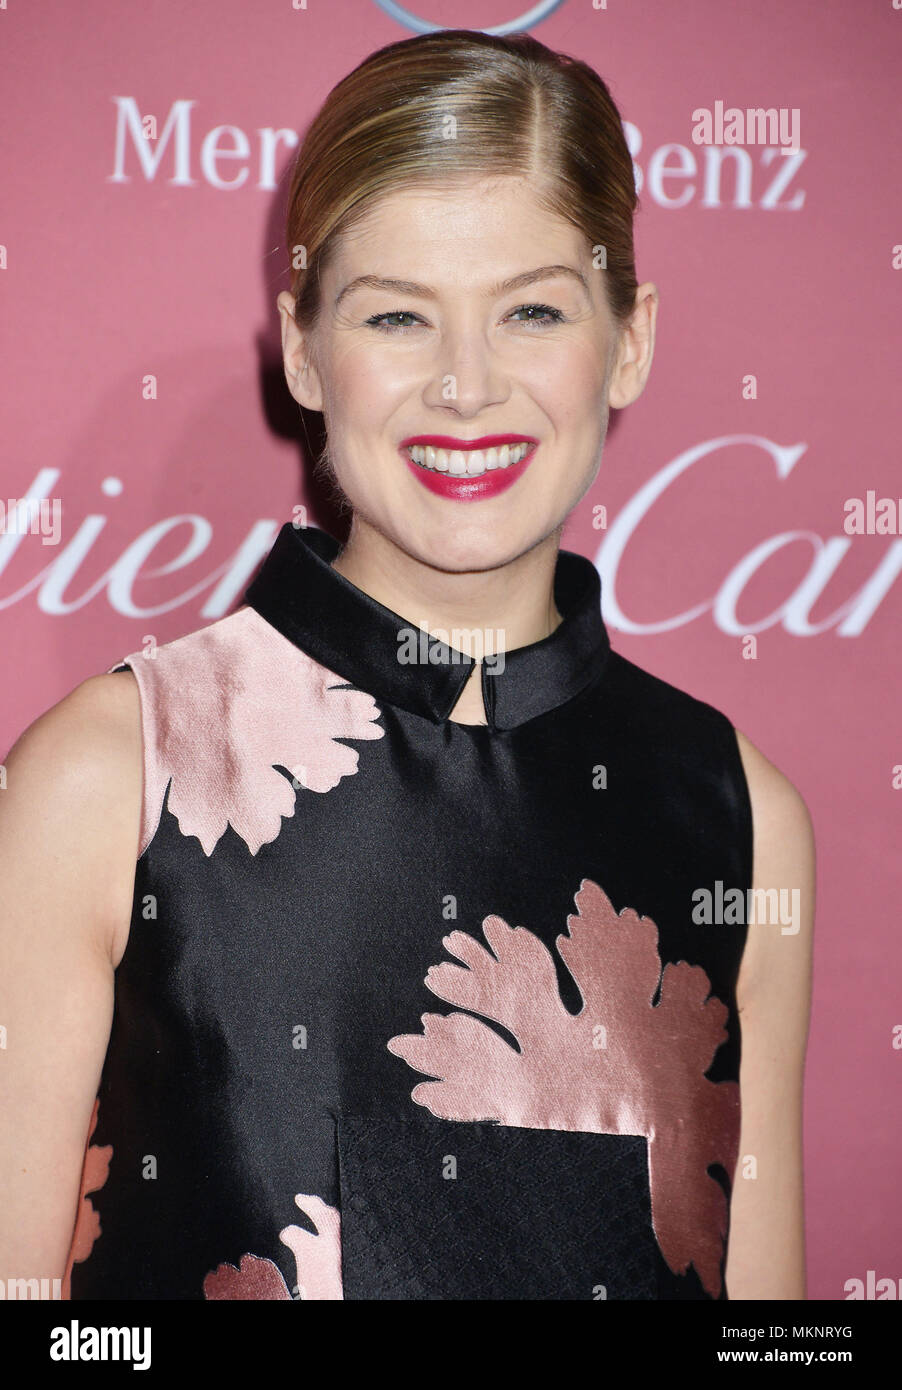 Rosamund Pike 033 at the  PSIFF-Palm Springs Int. Film Festival in Palm Spings Convention Center on January 3, 2015Rosamund Pike 033  Event in Hollywood Life - California,  Red Carpet Event, Vertical, USA, Film Industry, Celebrities,  Photography, Bestof, Arts Culture and Entertainment, Topix Celebrities fashion / one person, Vertical, Best of, Hollywood Life, Event in Hollywood Life - California,  Red Carpet and backstage, USA, Film Industry, Celebrities,  movie celebrities, TV celebrities, Music celebrities, Photography, Bestof, Arts Culture and Entertainment,  Topix, headshot, vertical, fro Stock Photo